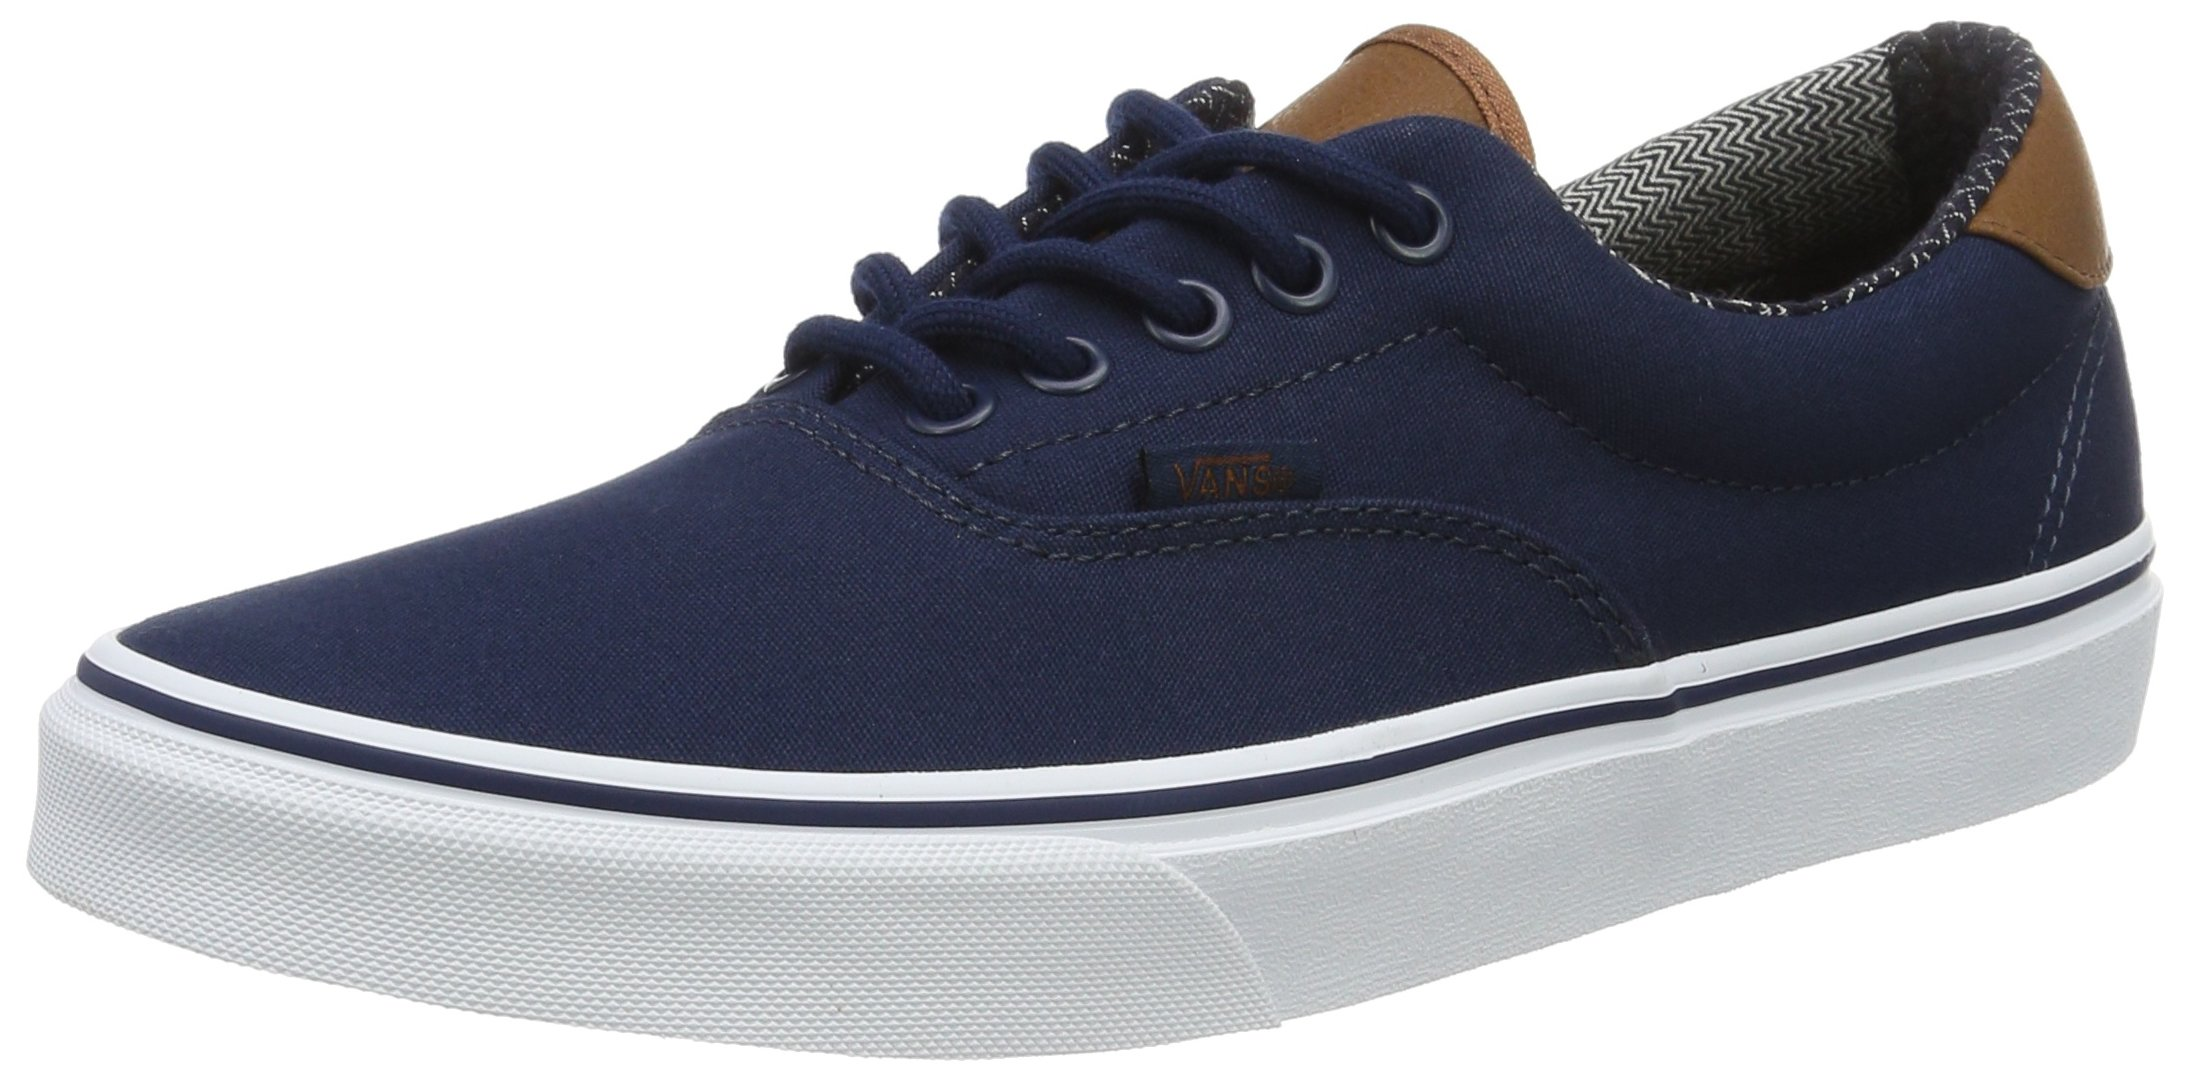 9f760fc60e Vans Era 59 (C L) - VA38FSMVE C and L Dress Blues Material Mix ...